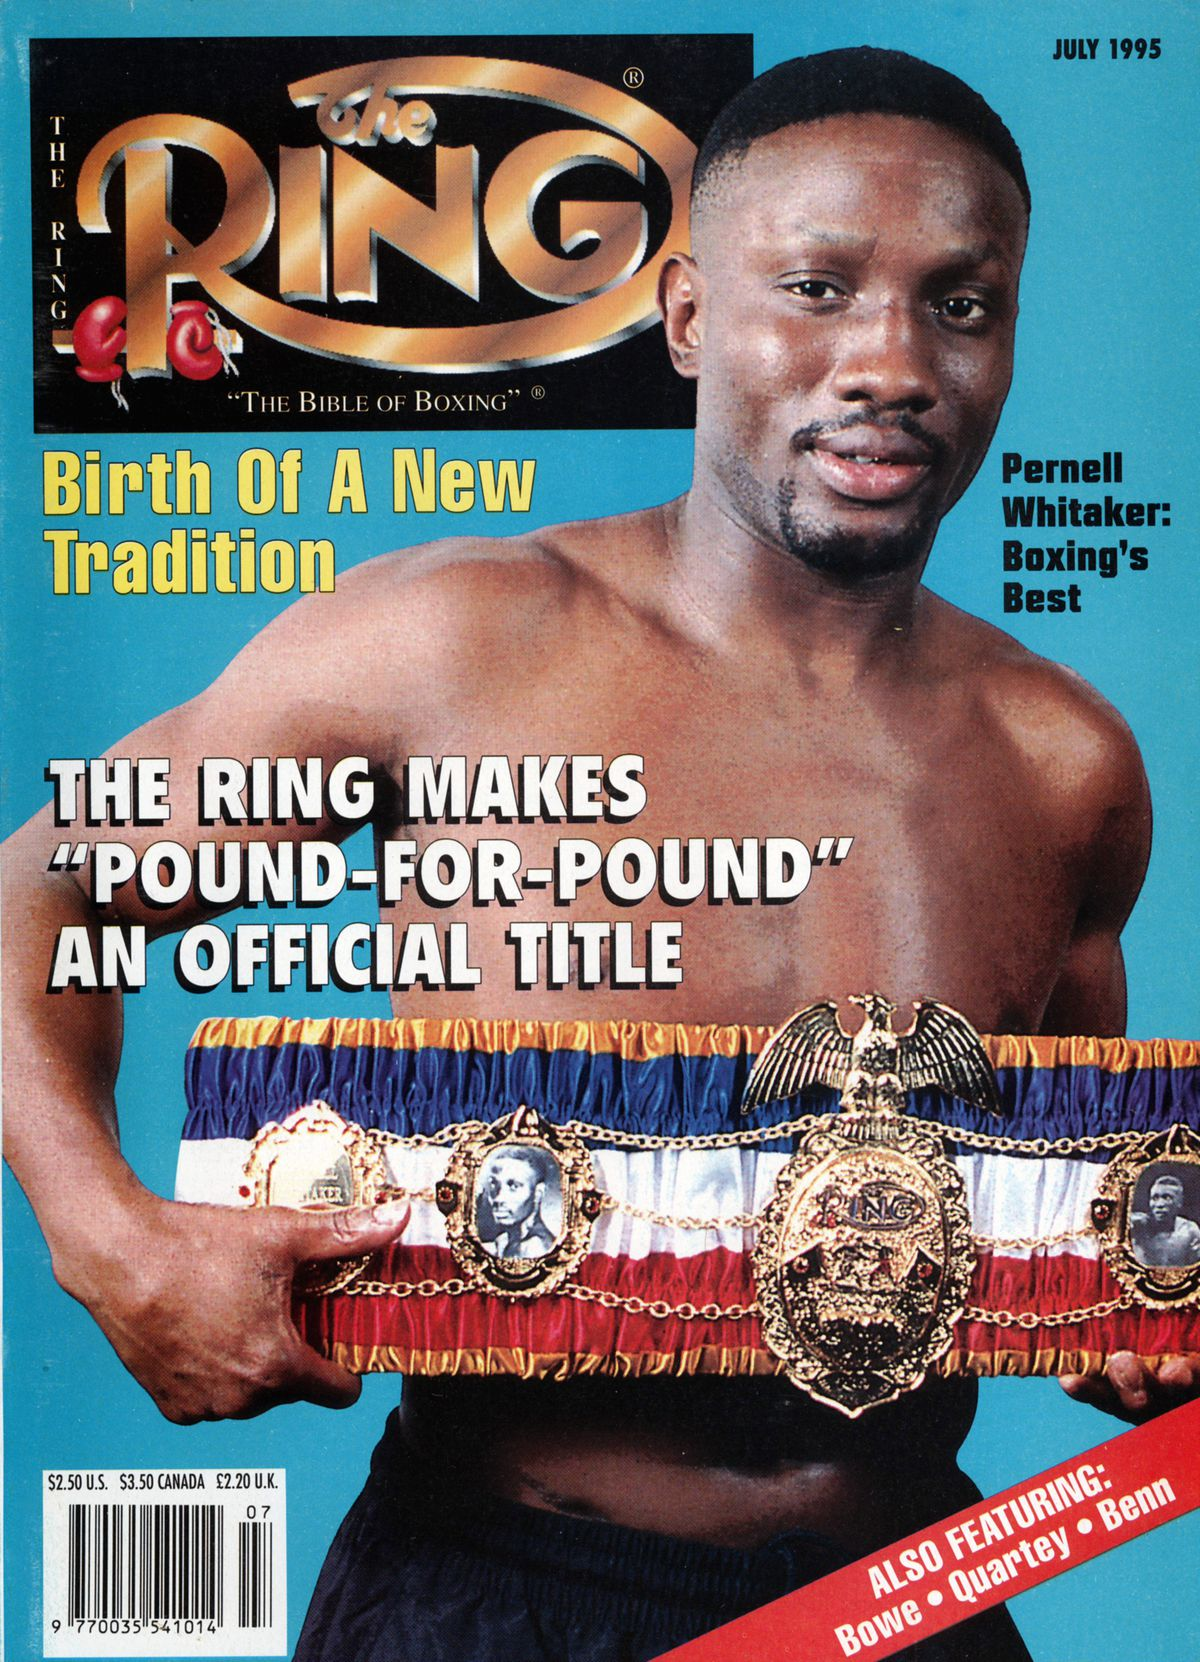 Ring Magazine Cover - Pernell Whitaker